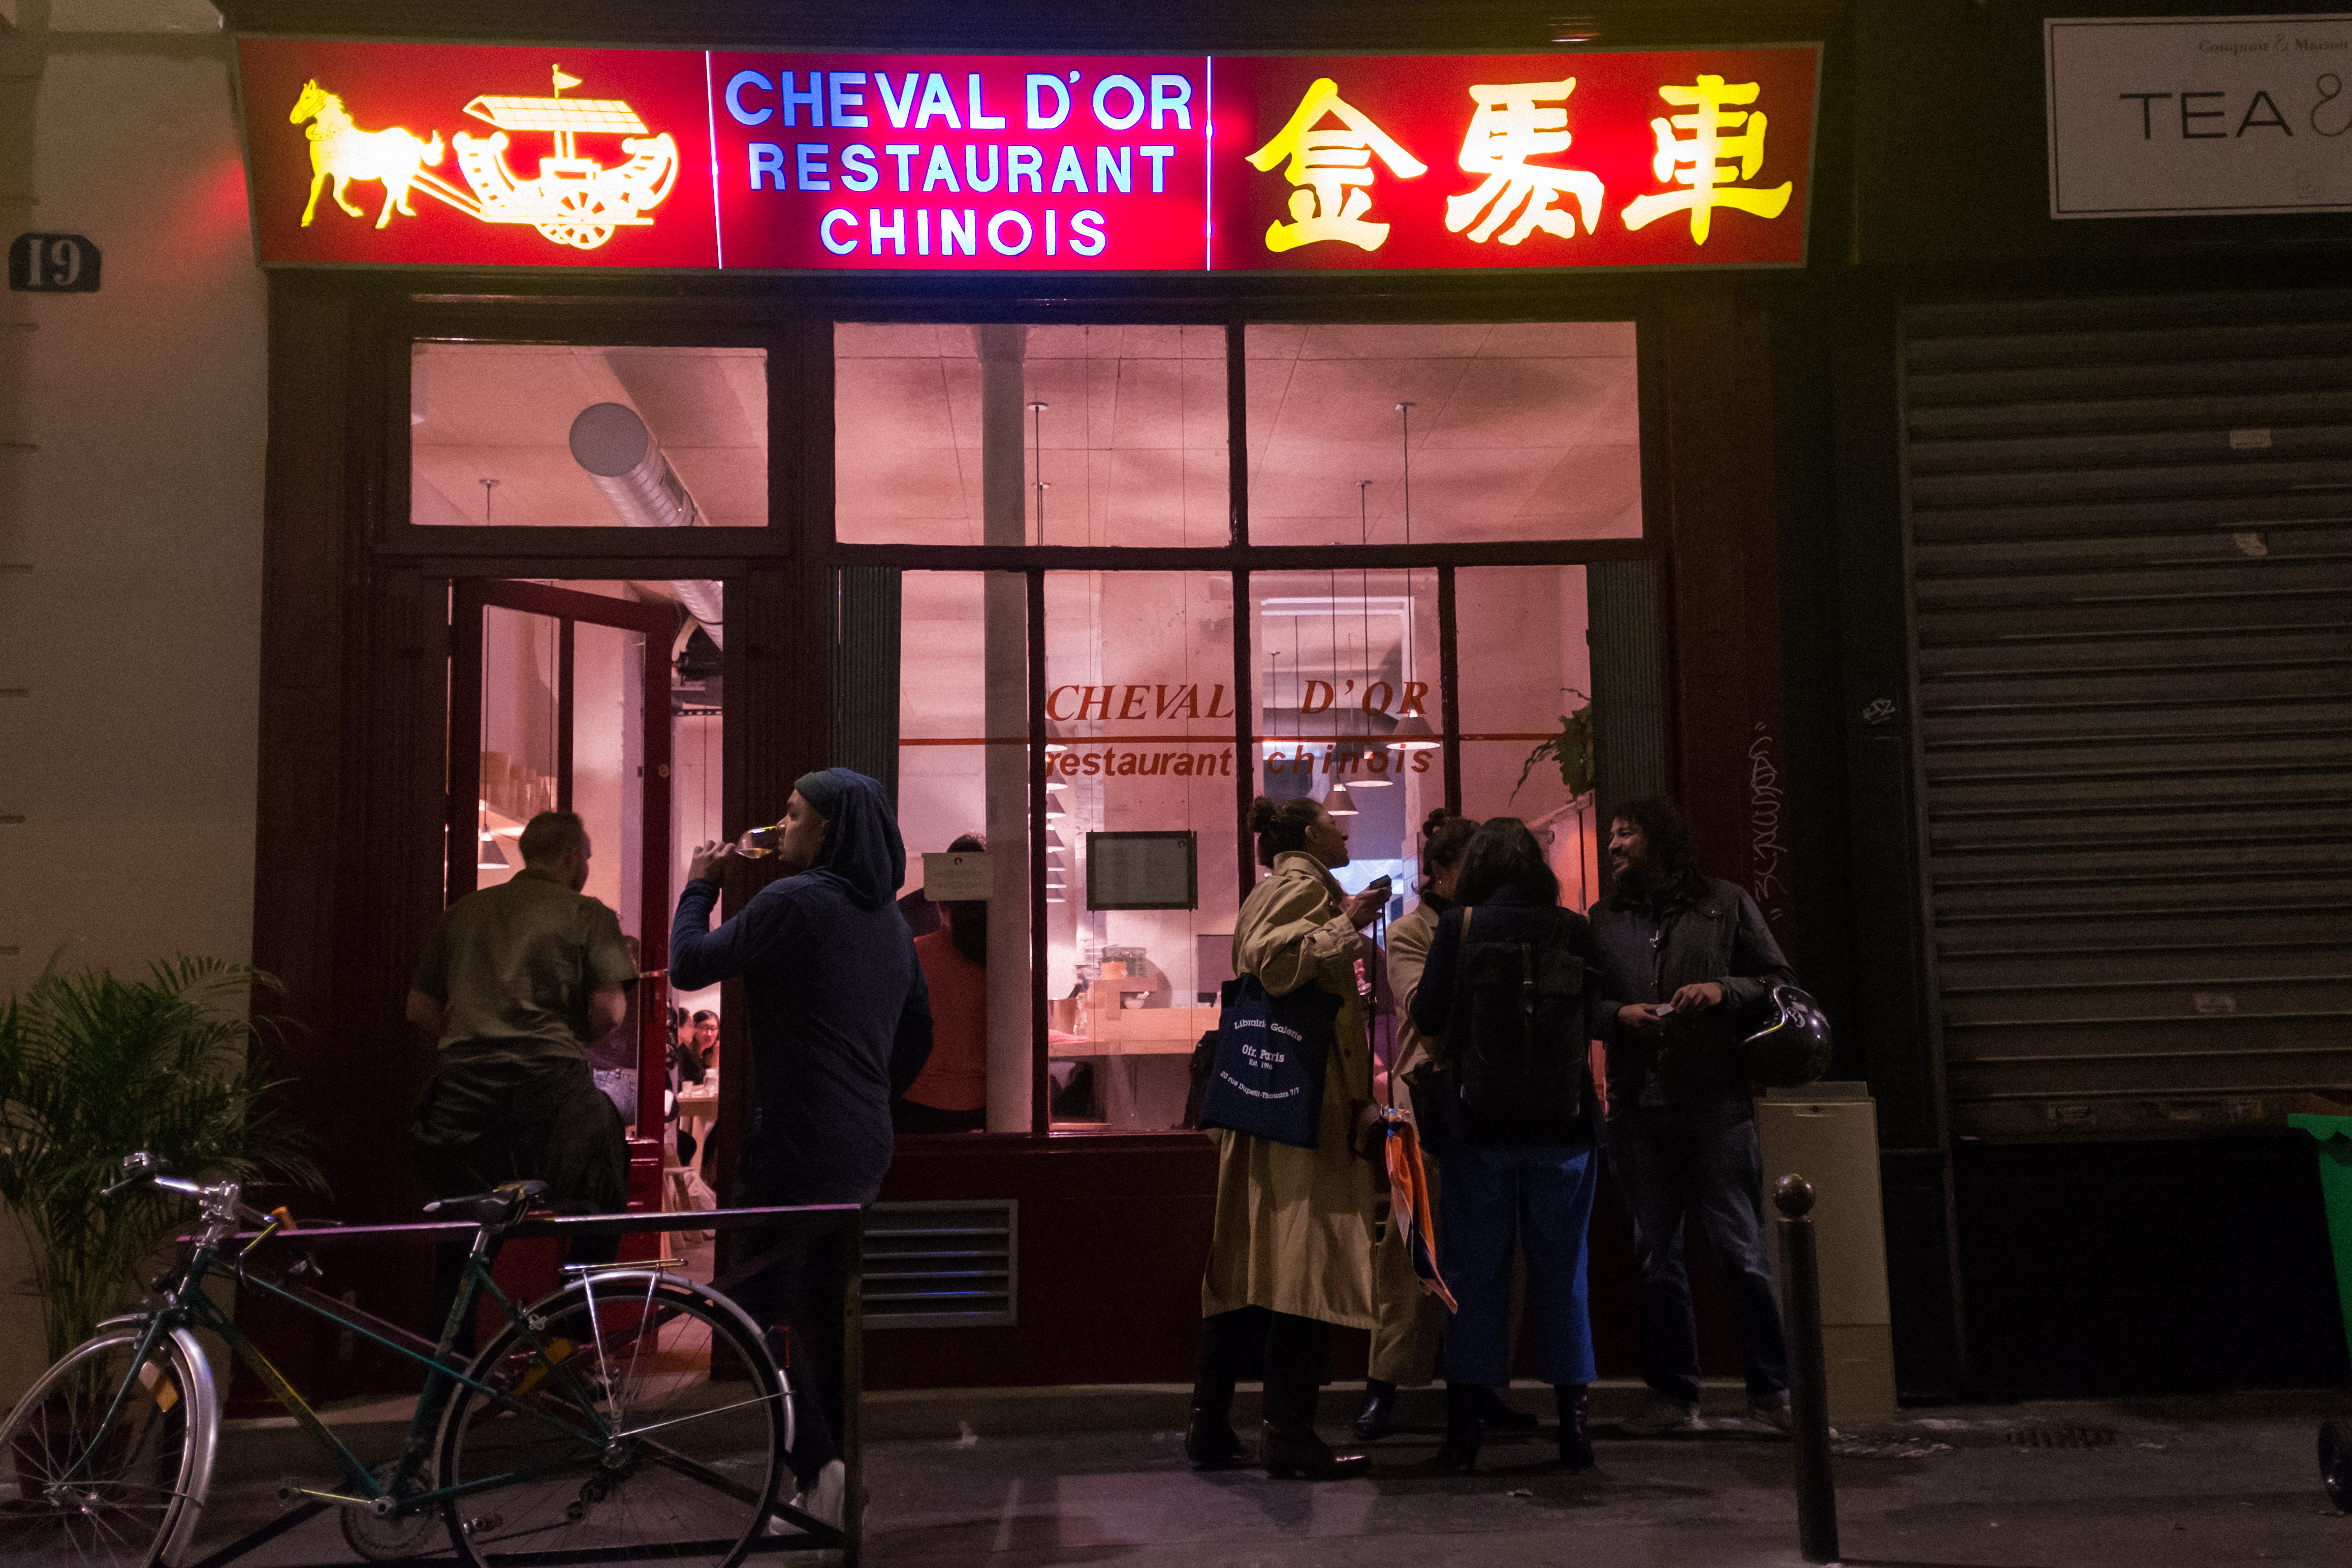 The exterior of a hip Paris restaurant at night, whose sign is from an old-school Chinese restaurant